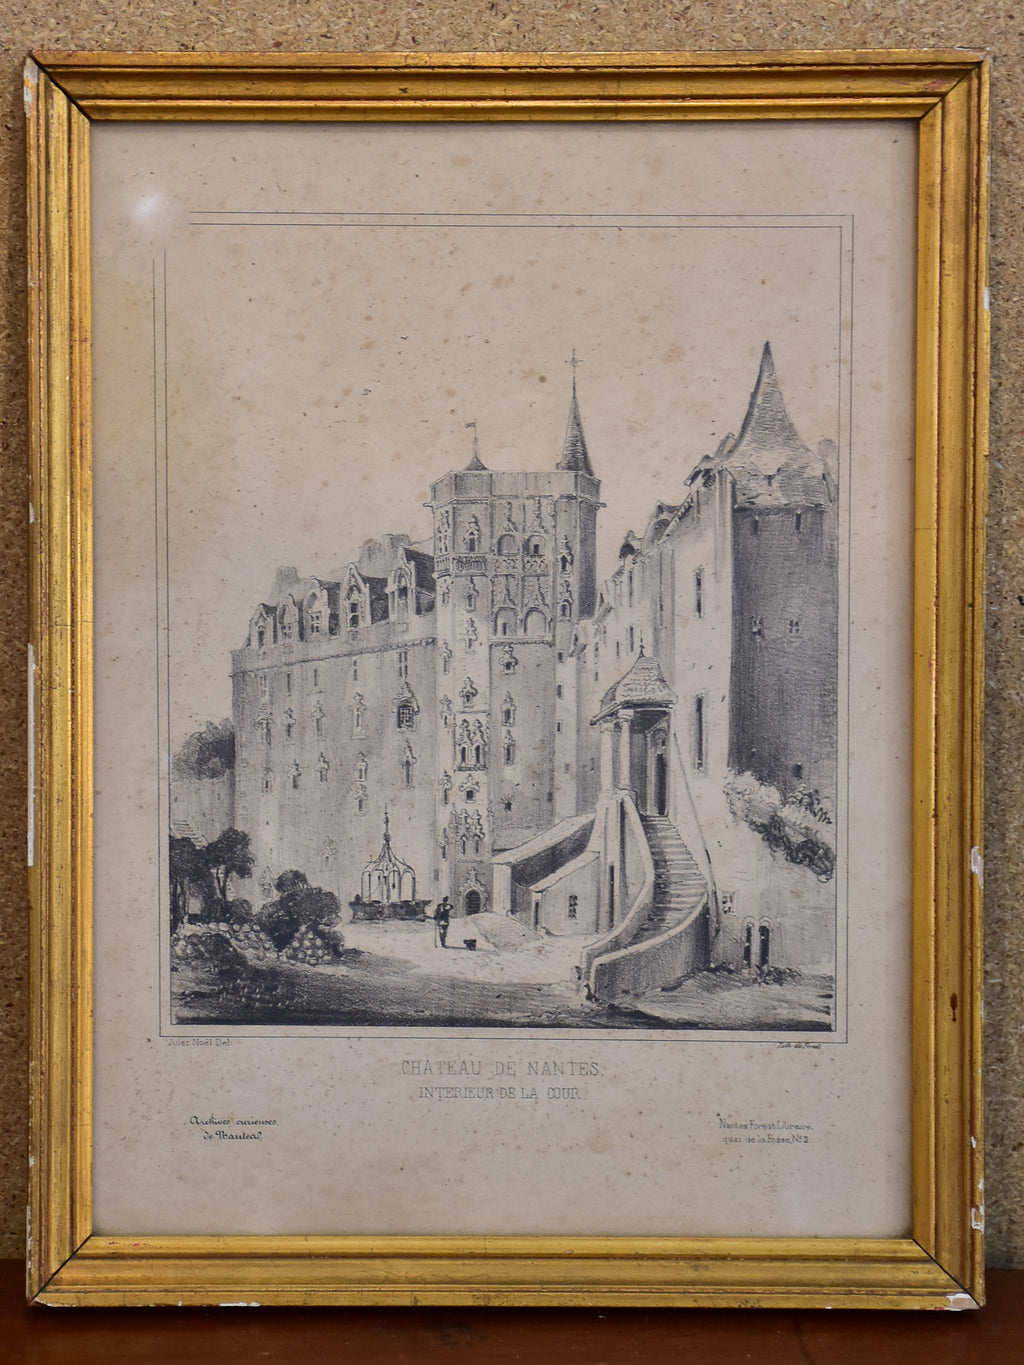 19th century French etching - Chateau Nantes